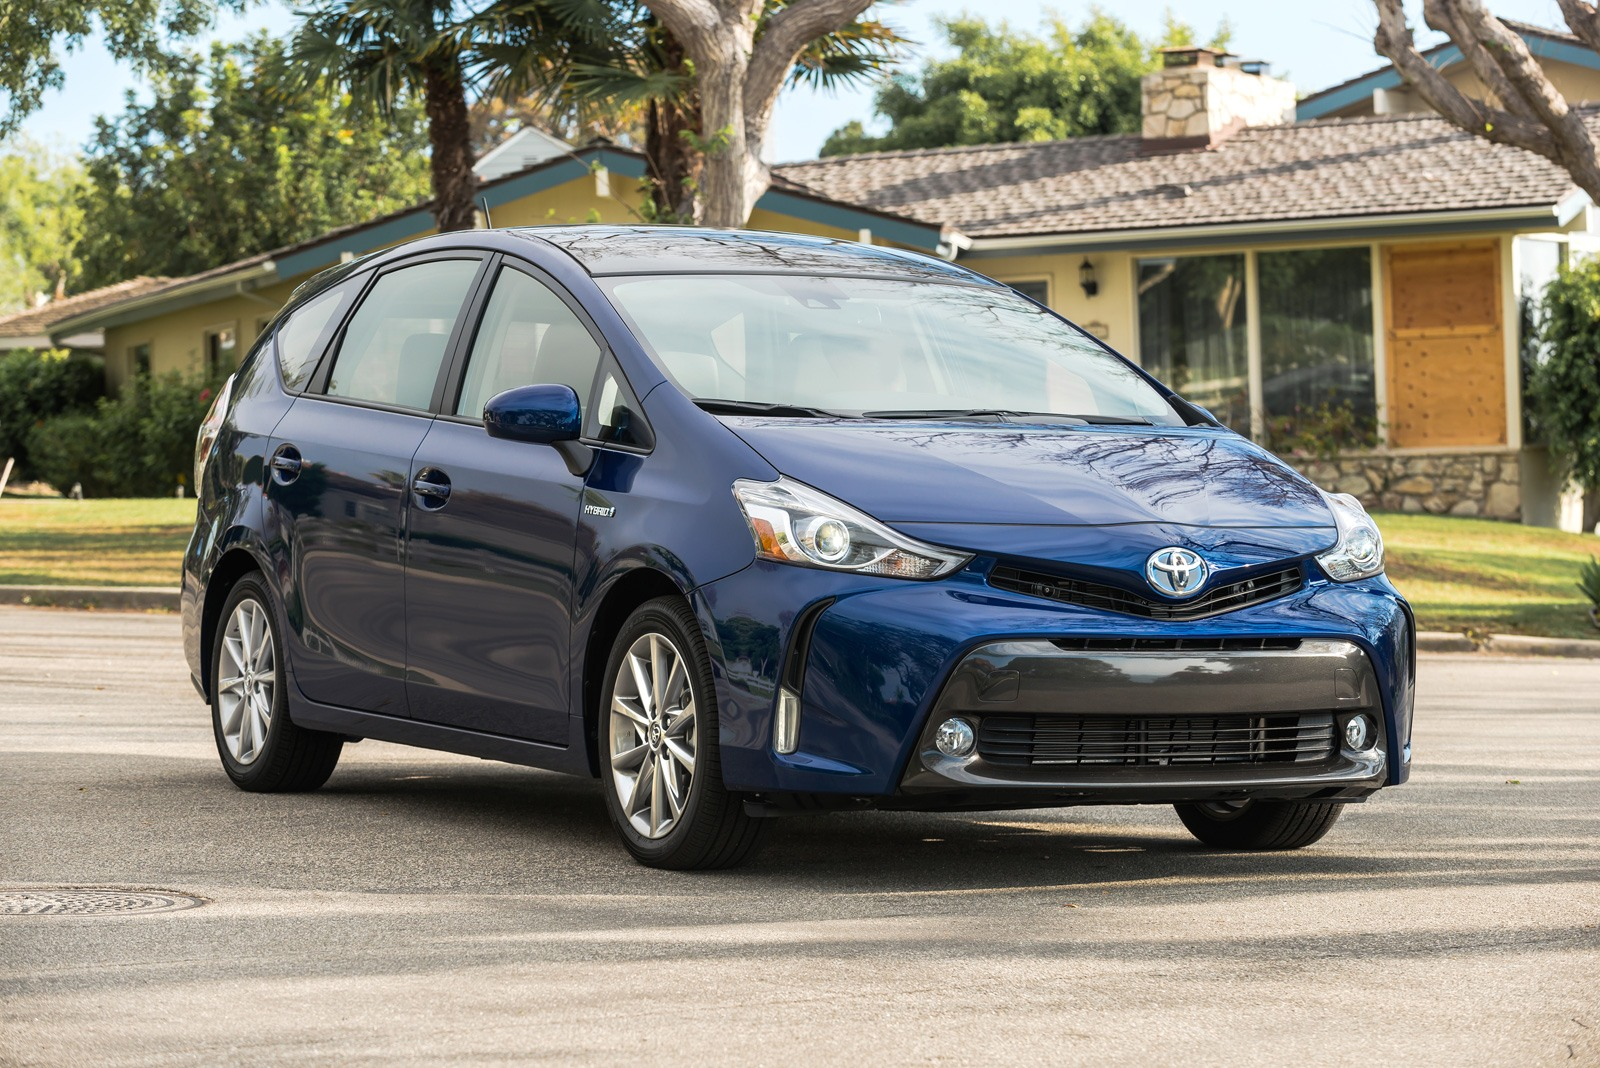 The Prius v offers a roomy rear seat and generous cargo area, but it is  based on the last-generation Prius. Consumer Reports praises its  comfortable ...